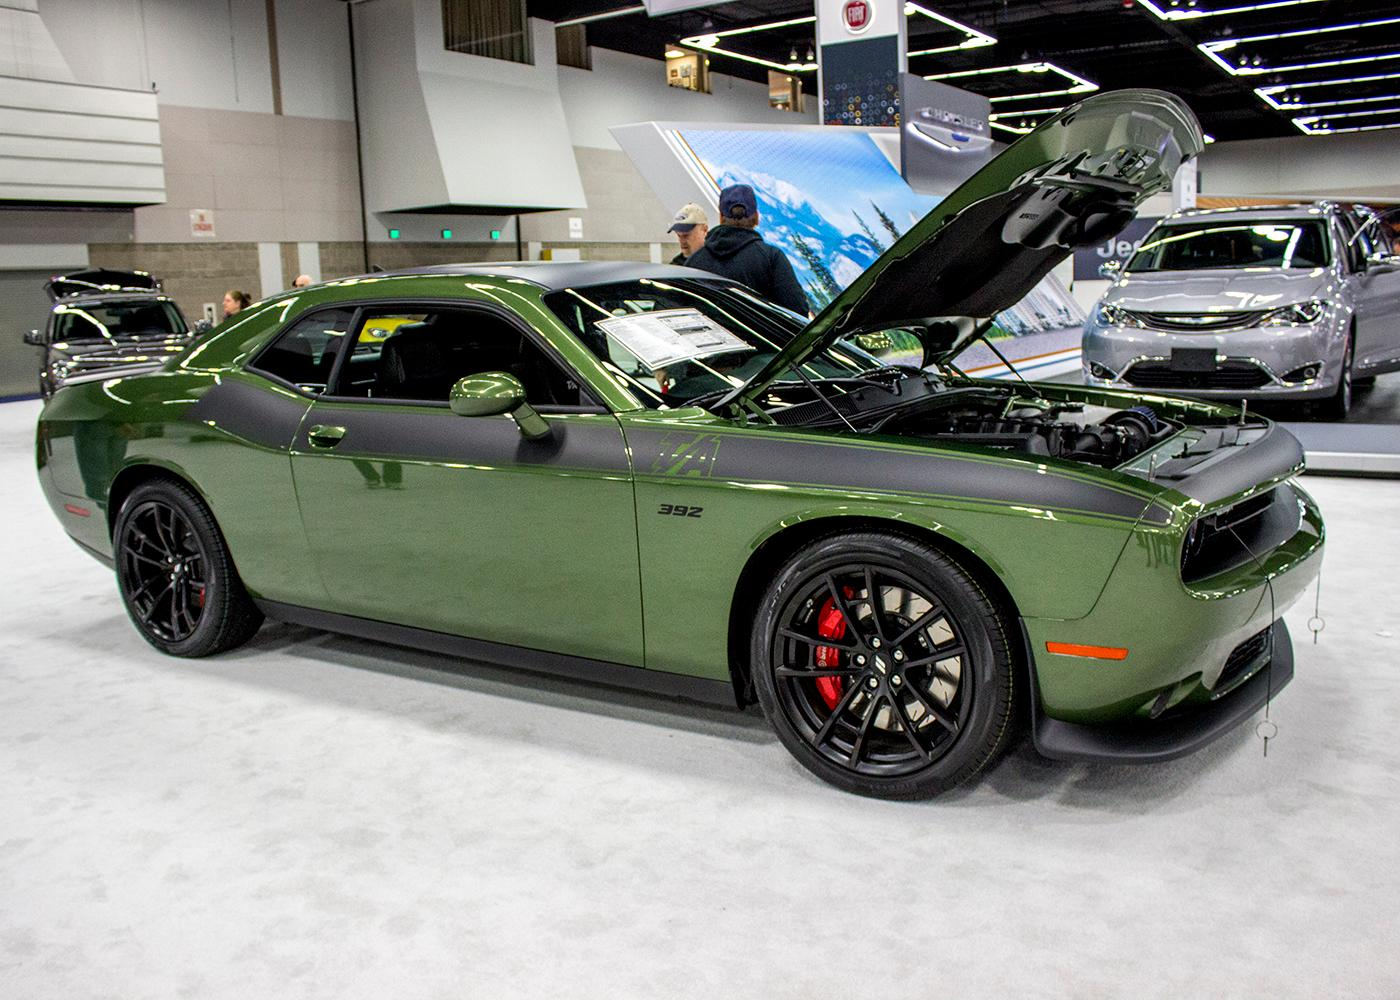 Dodge Challenger T/A 392 - The Portland International Auto Show began at the Oregon Convention Center on Jan. 25, 2018. The event drew prospective buyers and others who enjoyed looking at and comparing vehicles. Photo by Amanda Butt